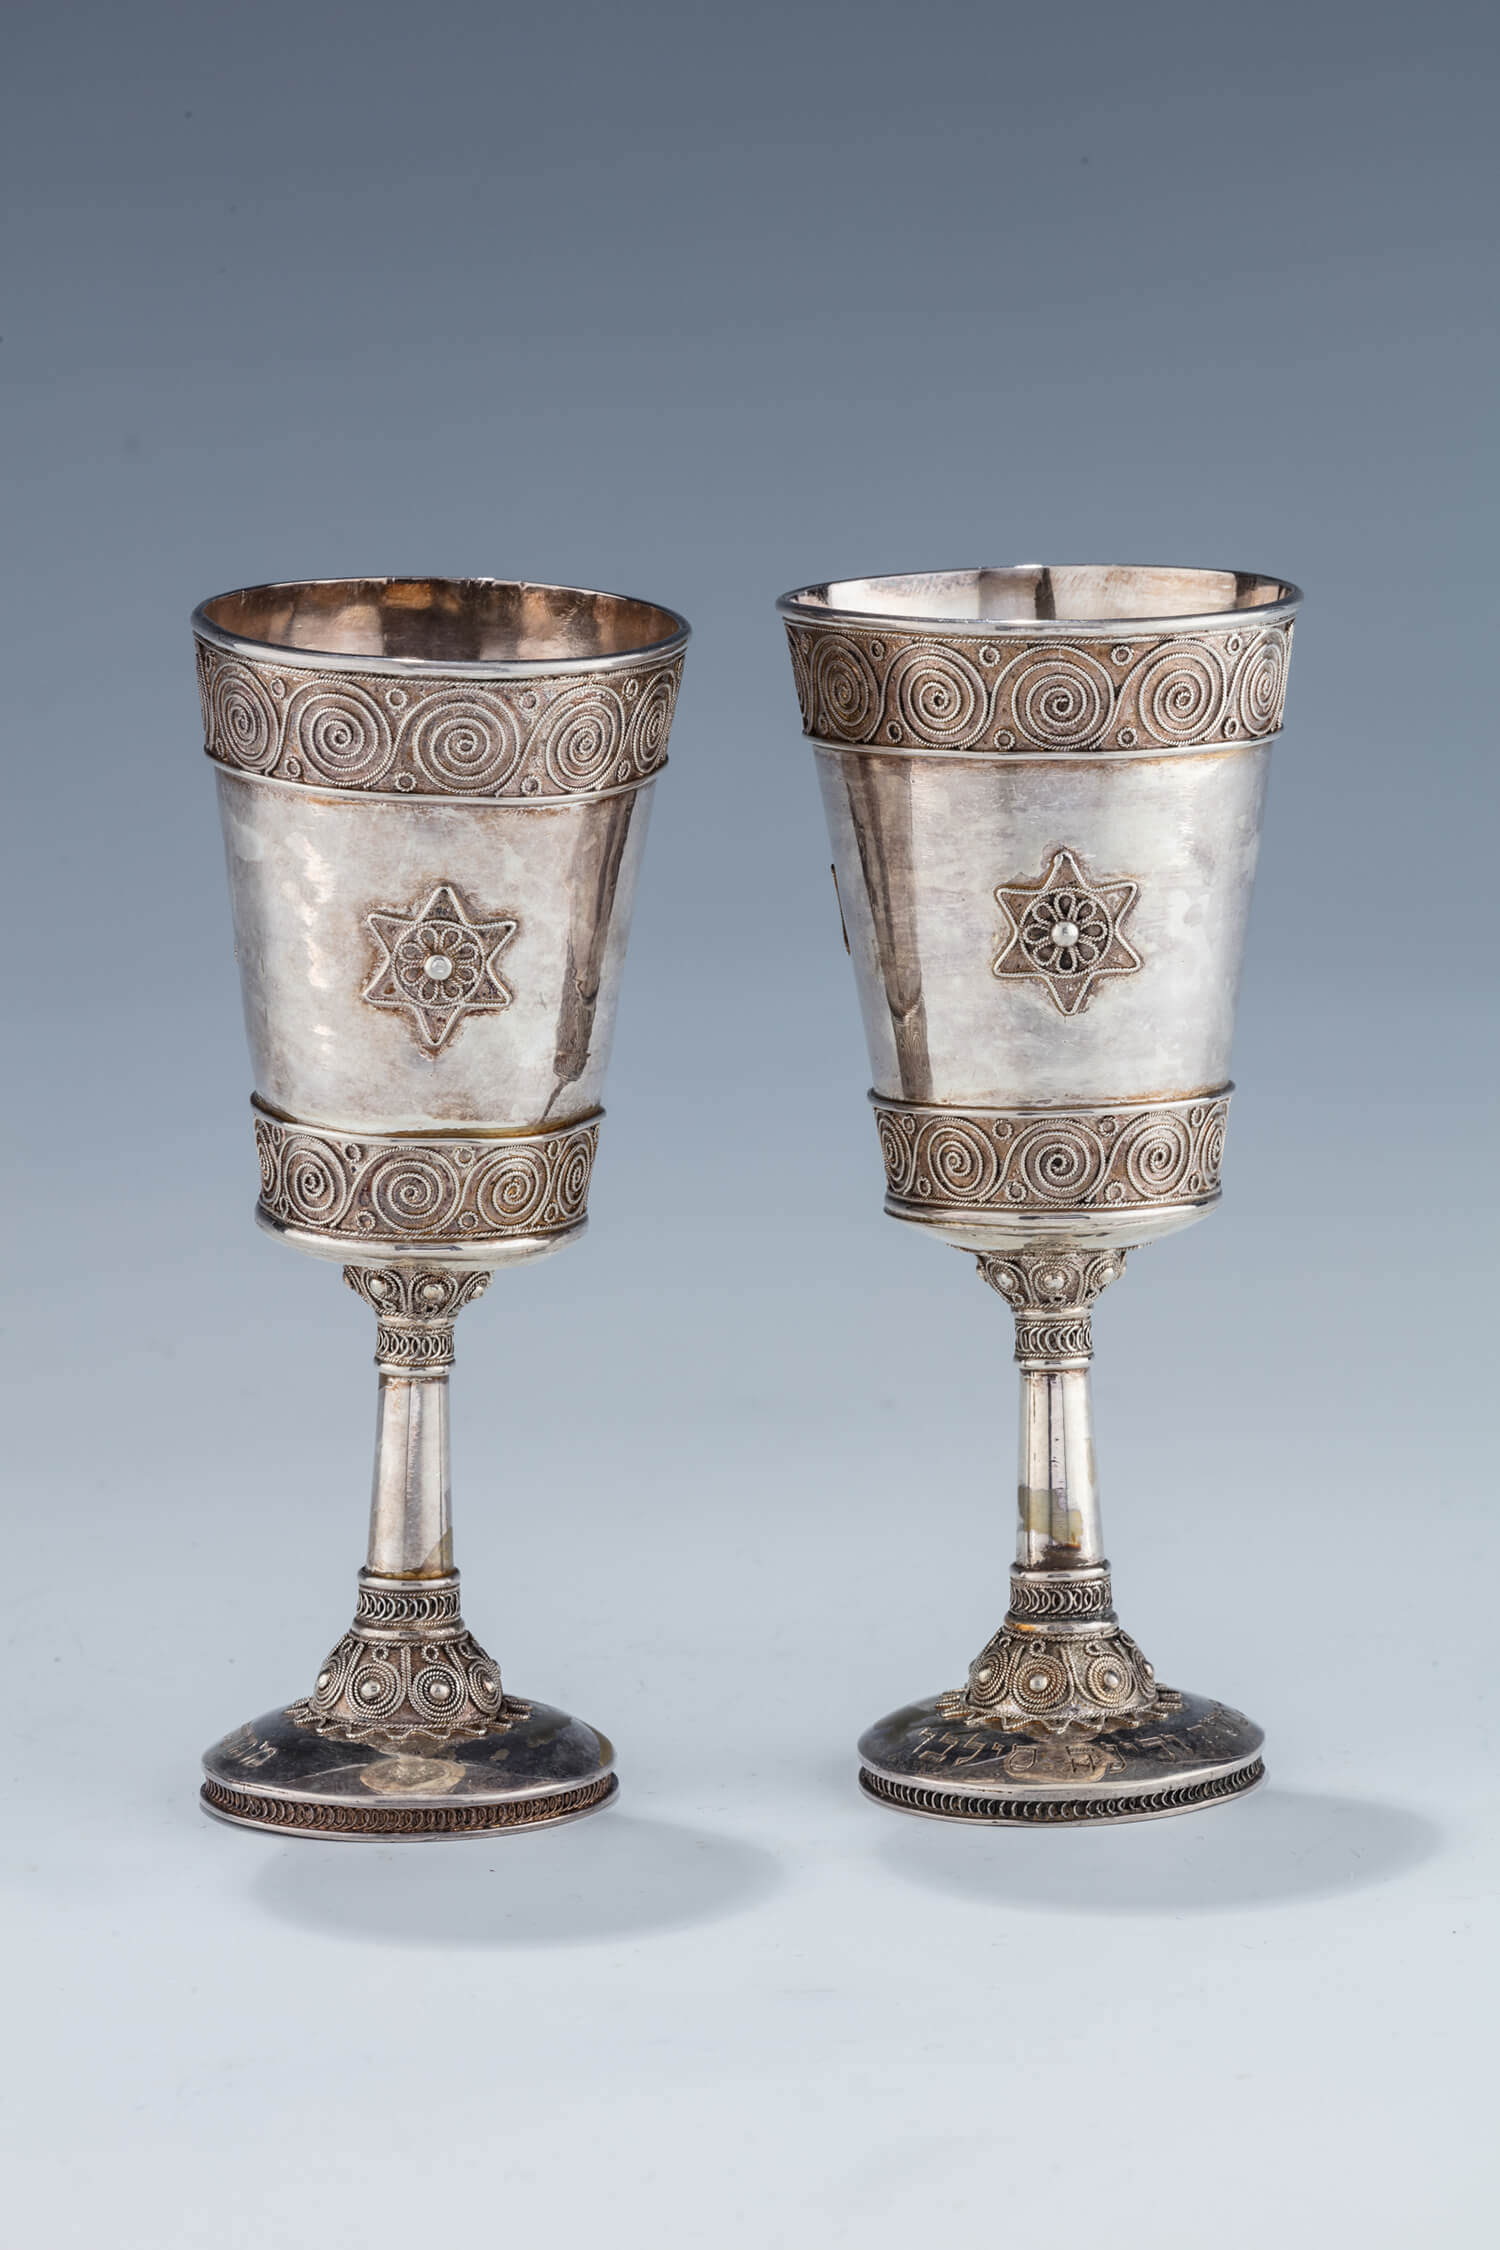 043. A PAIR OF EARLY SILVER KIDDUSH GOBLETS BY THE BEZALEL SCHOOL